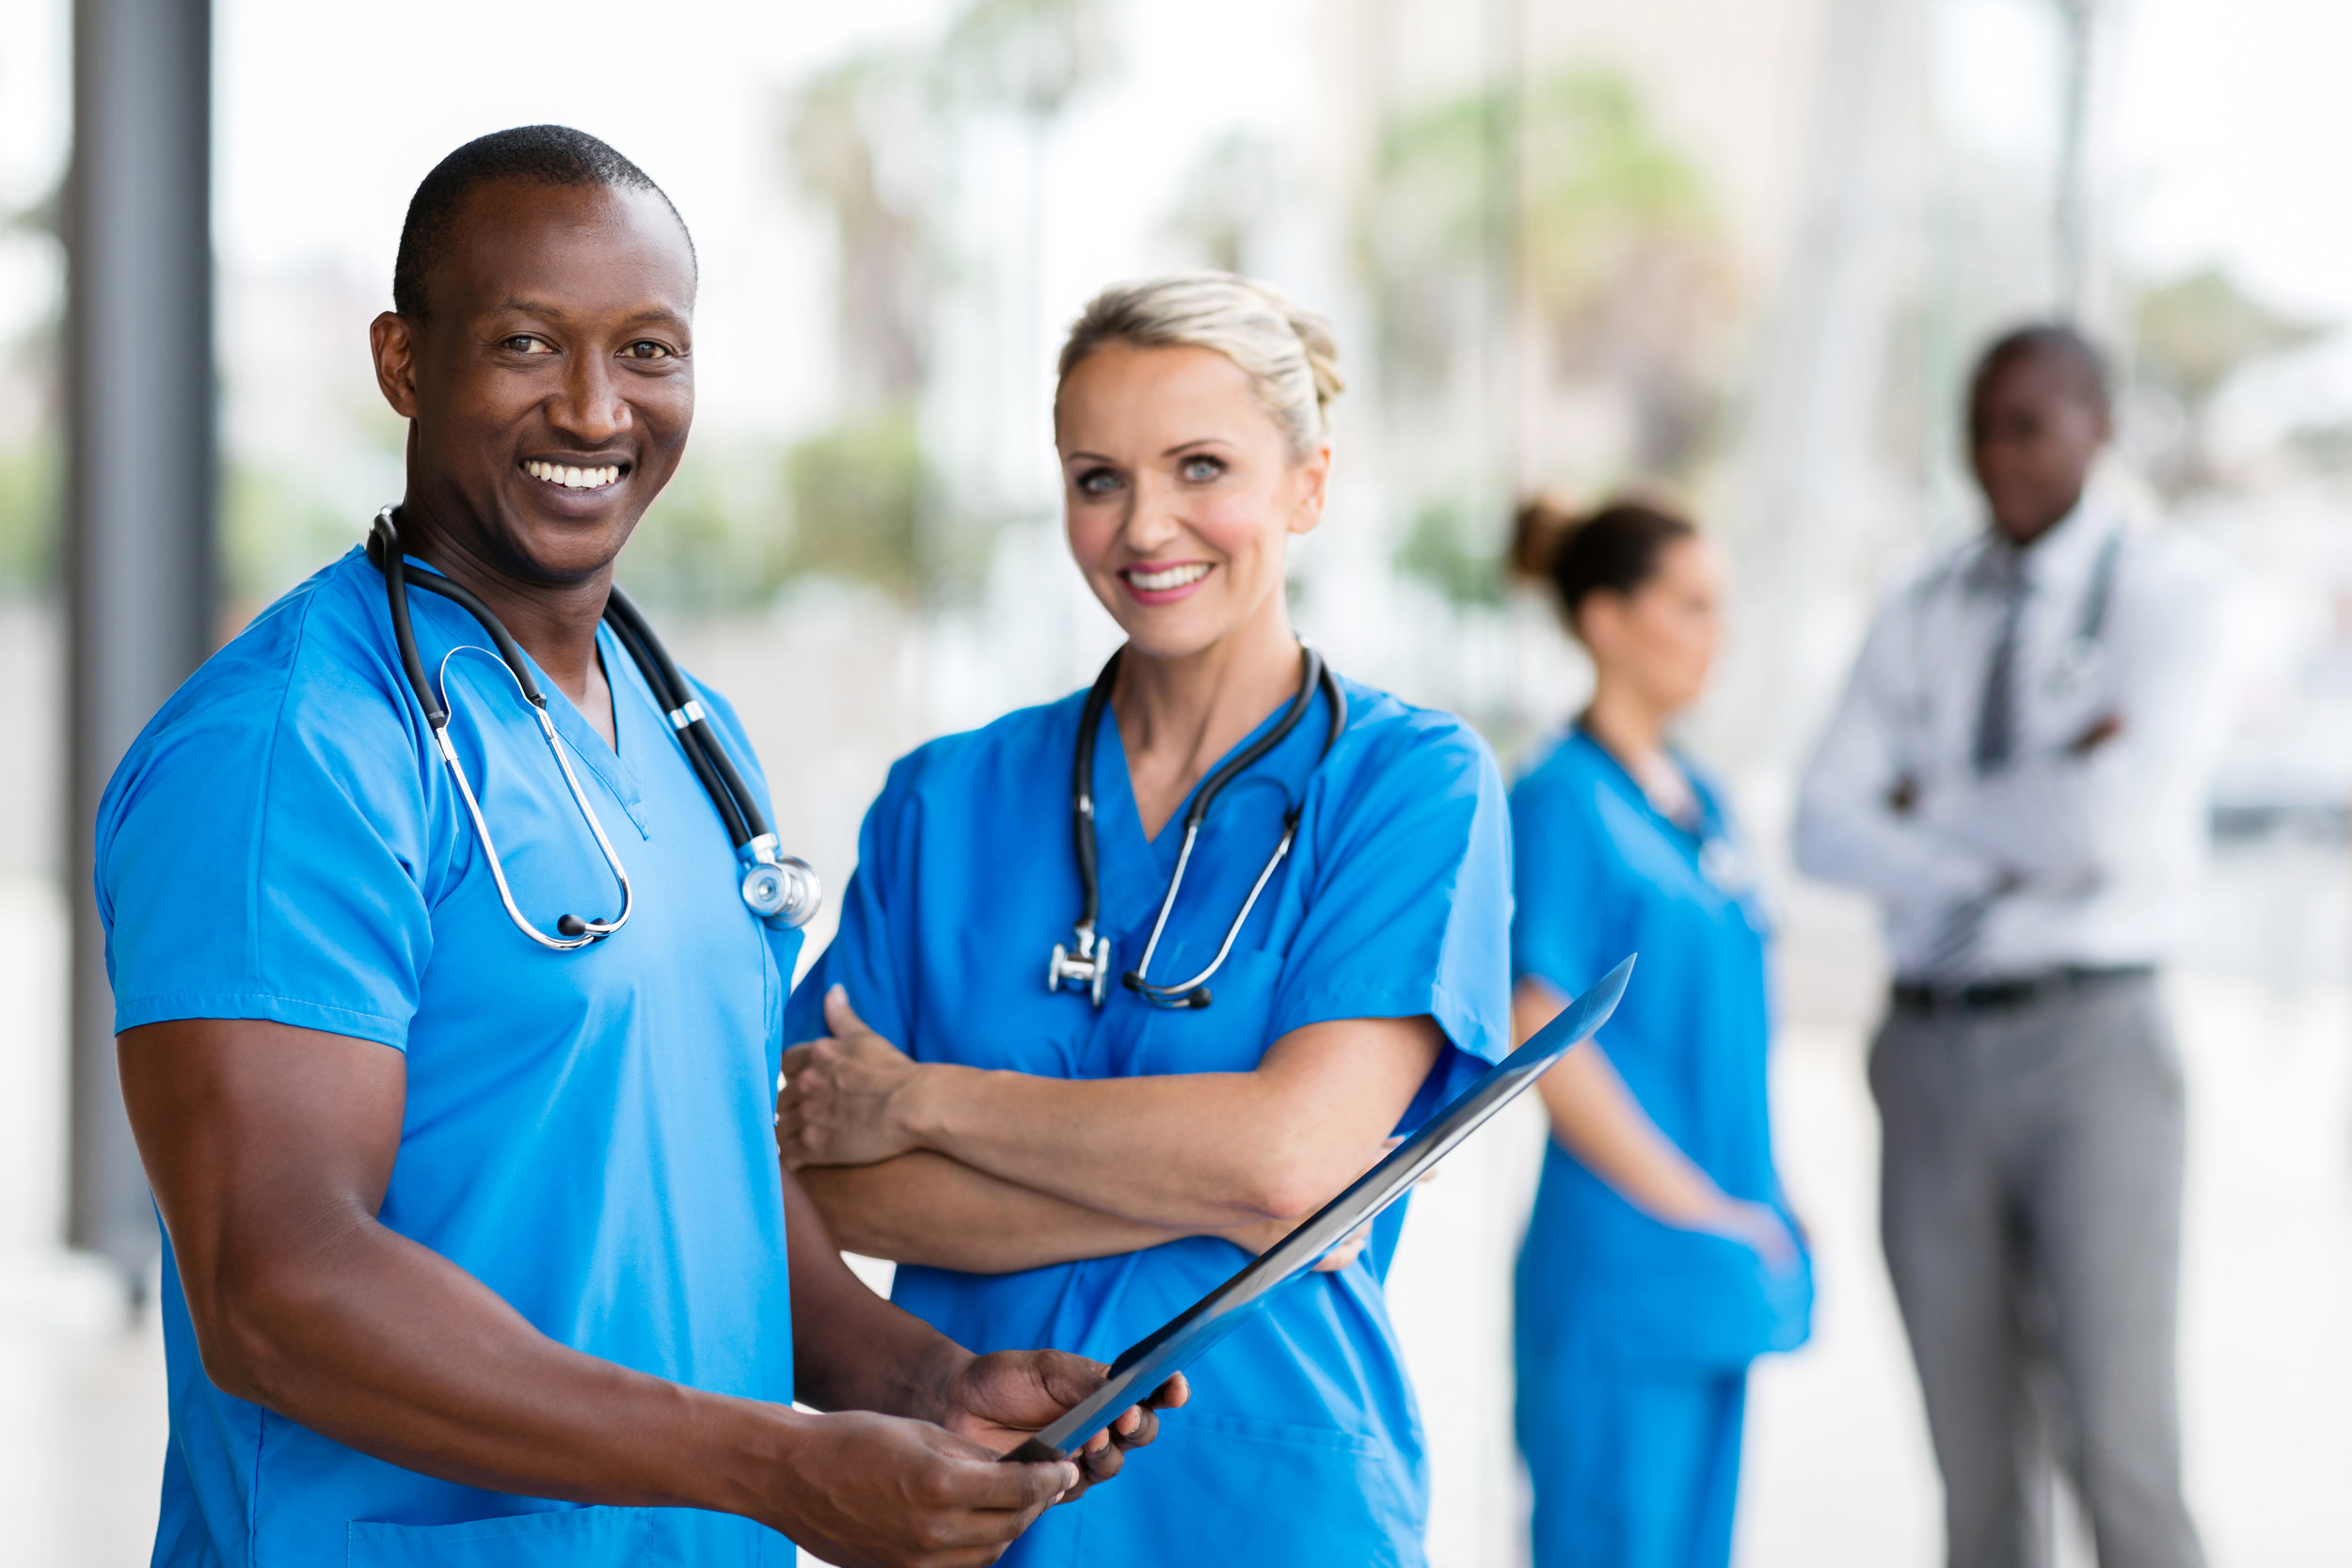 Improve employee engagement and value-driven care with Care Logistics